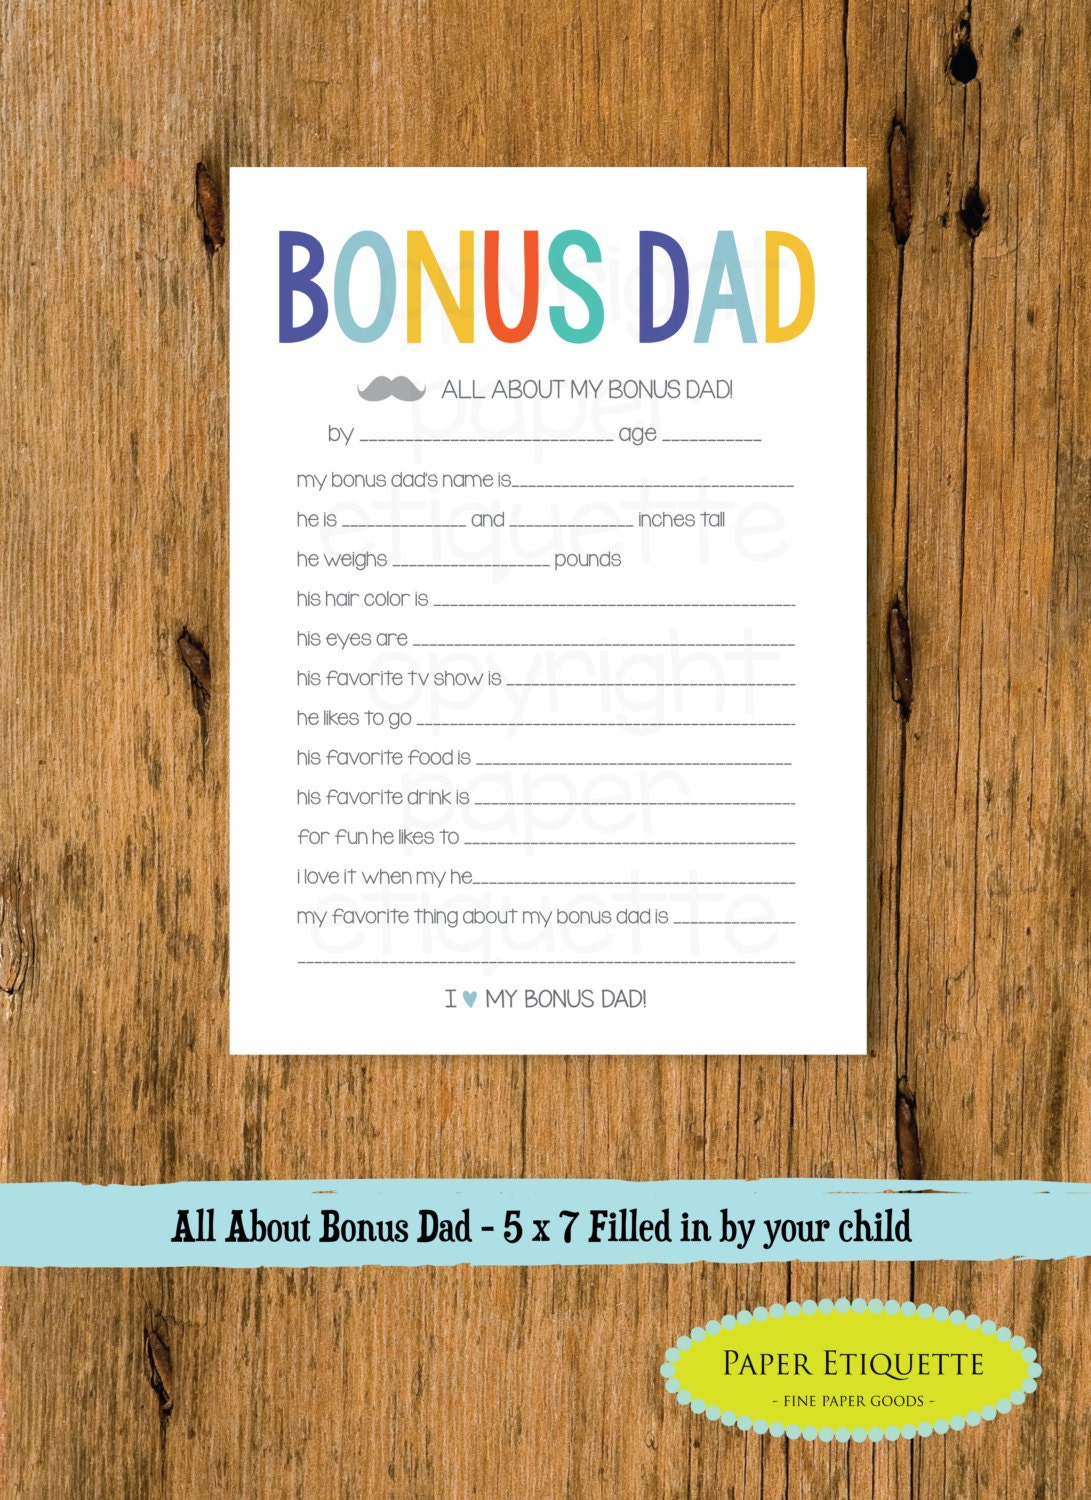 All About My Bonus Dad Step Father's Day Gift 5 x 7